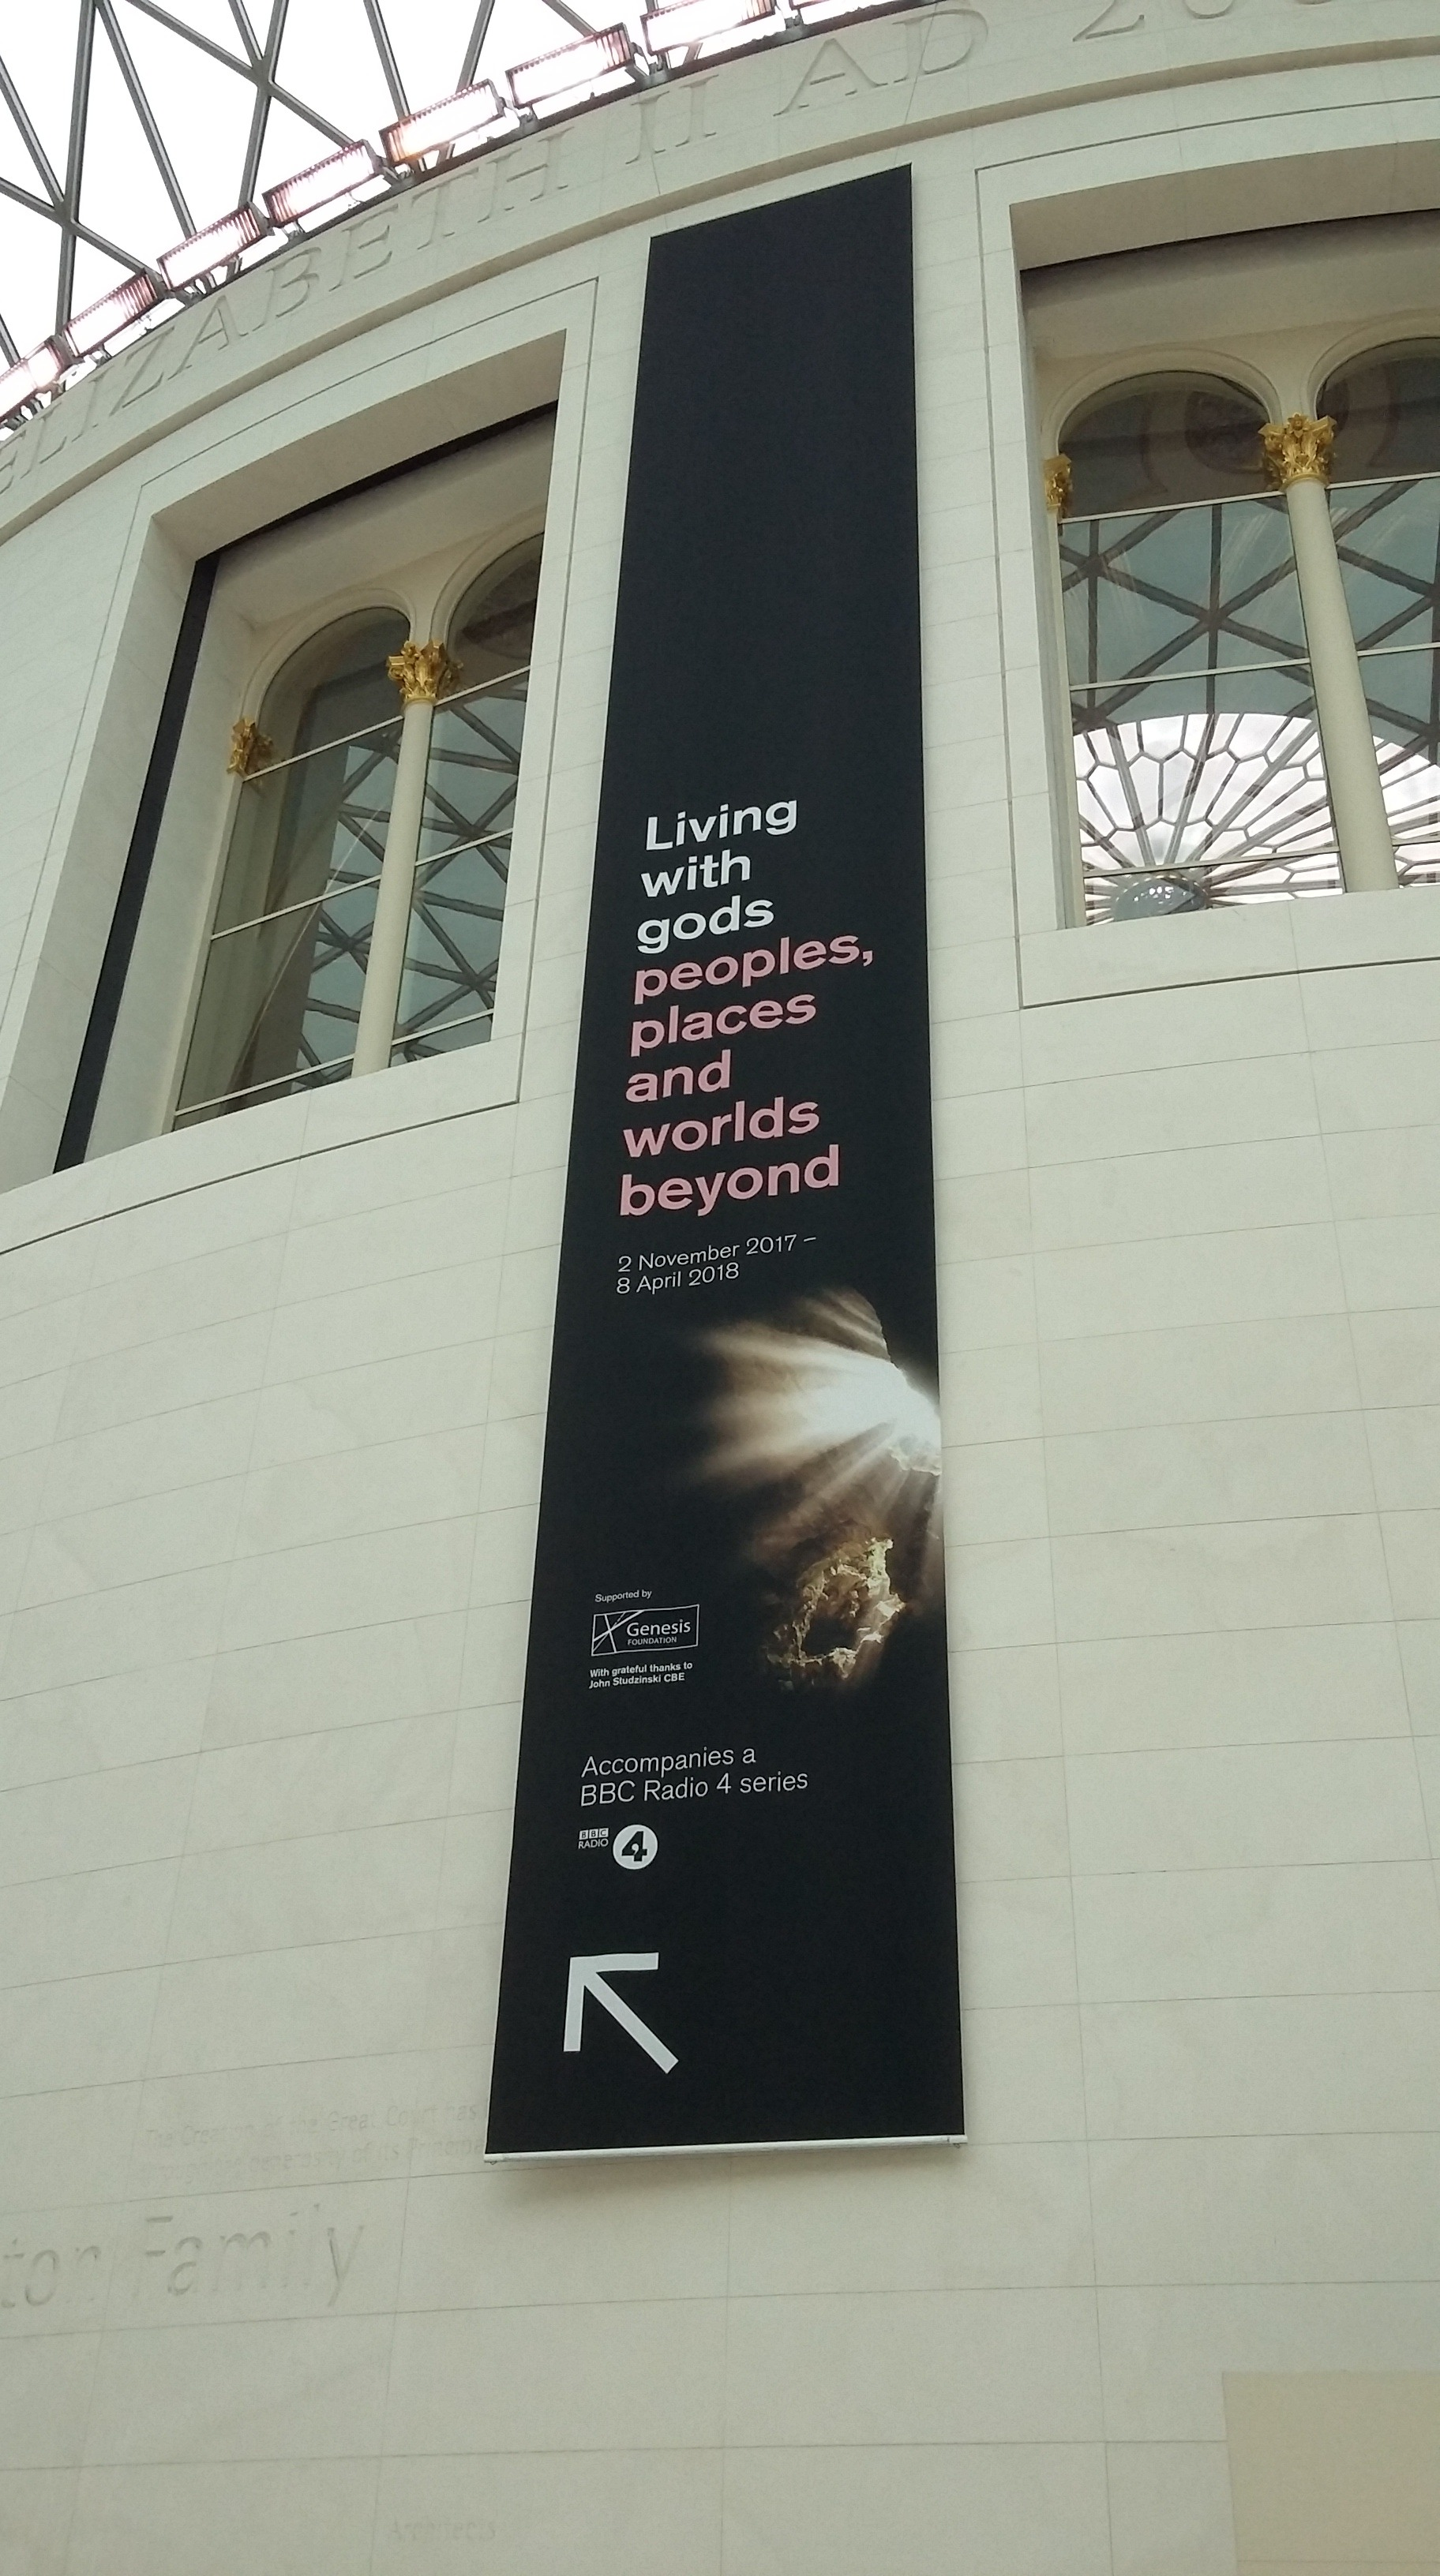 Living with Gods exhibition sign